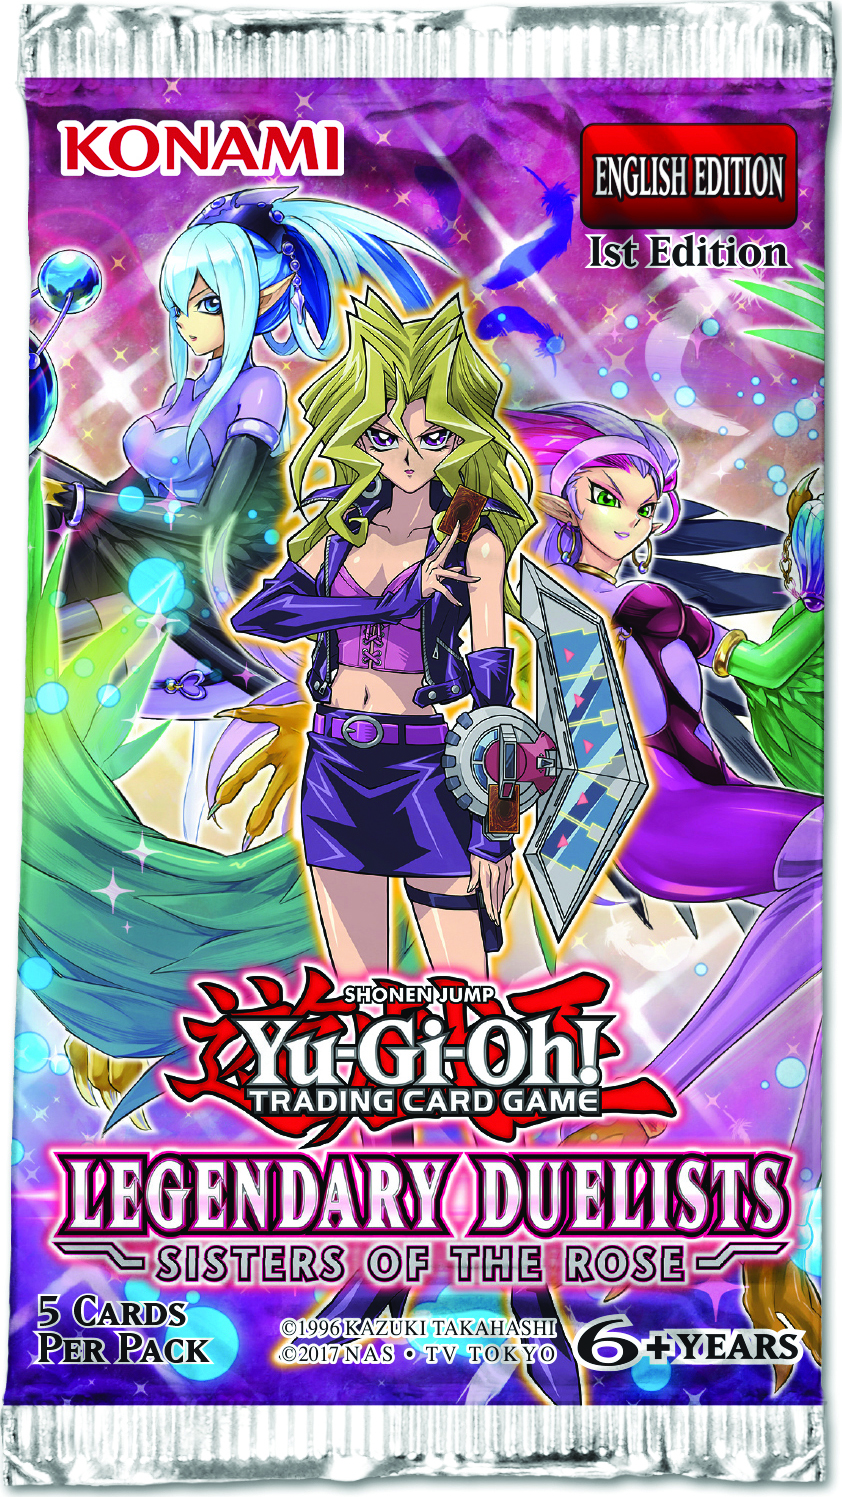 More Yu-Gi-Oh! TCG Upcoming Products | YuGiOh! World